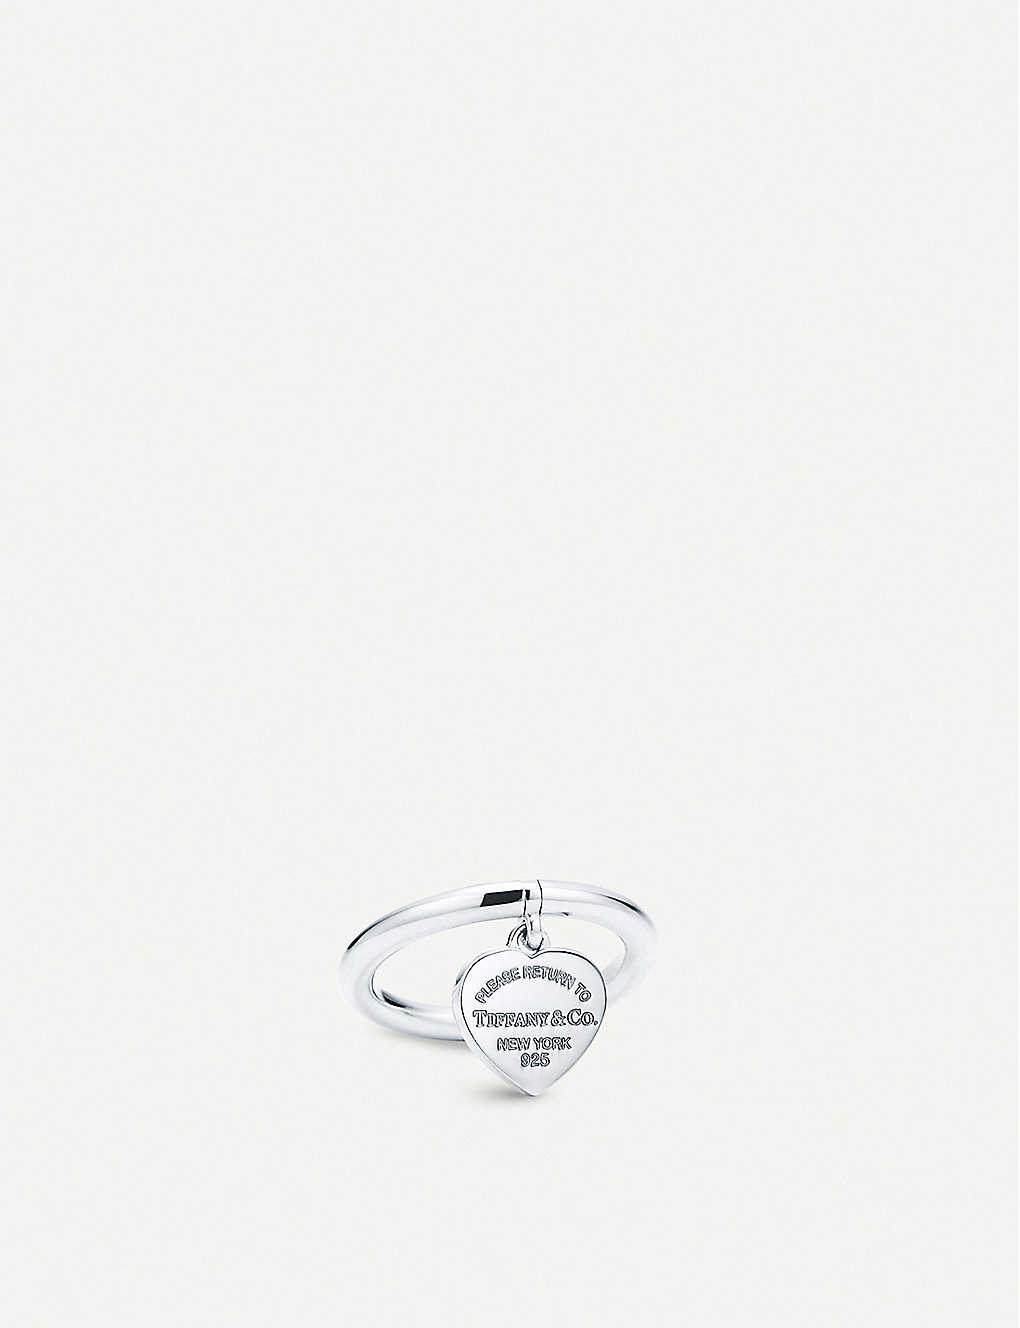 325ce22e2 TIFFANY & CO - Return to Tiffany™ Sterling Silver Heart Tag Ring ...